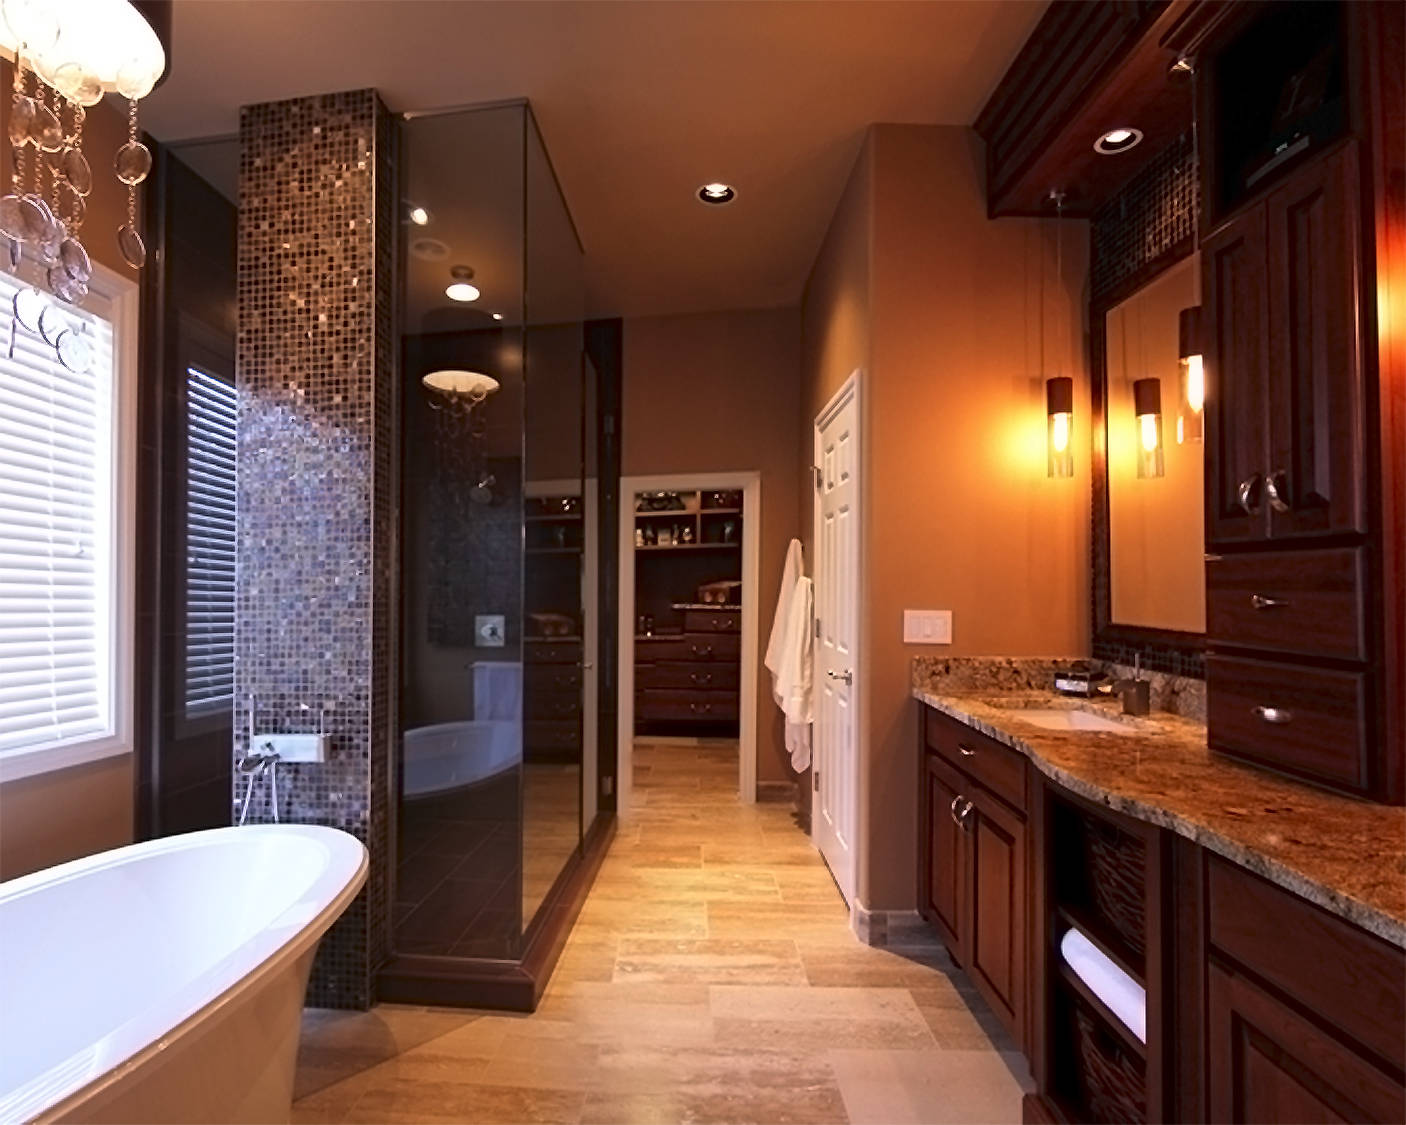 Luxury And Comfort Worth Every Penny Of Cost Remodeling Bathroom - How much is it cost to remodel a bathroom